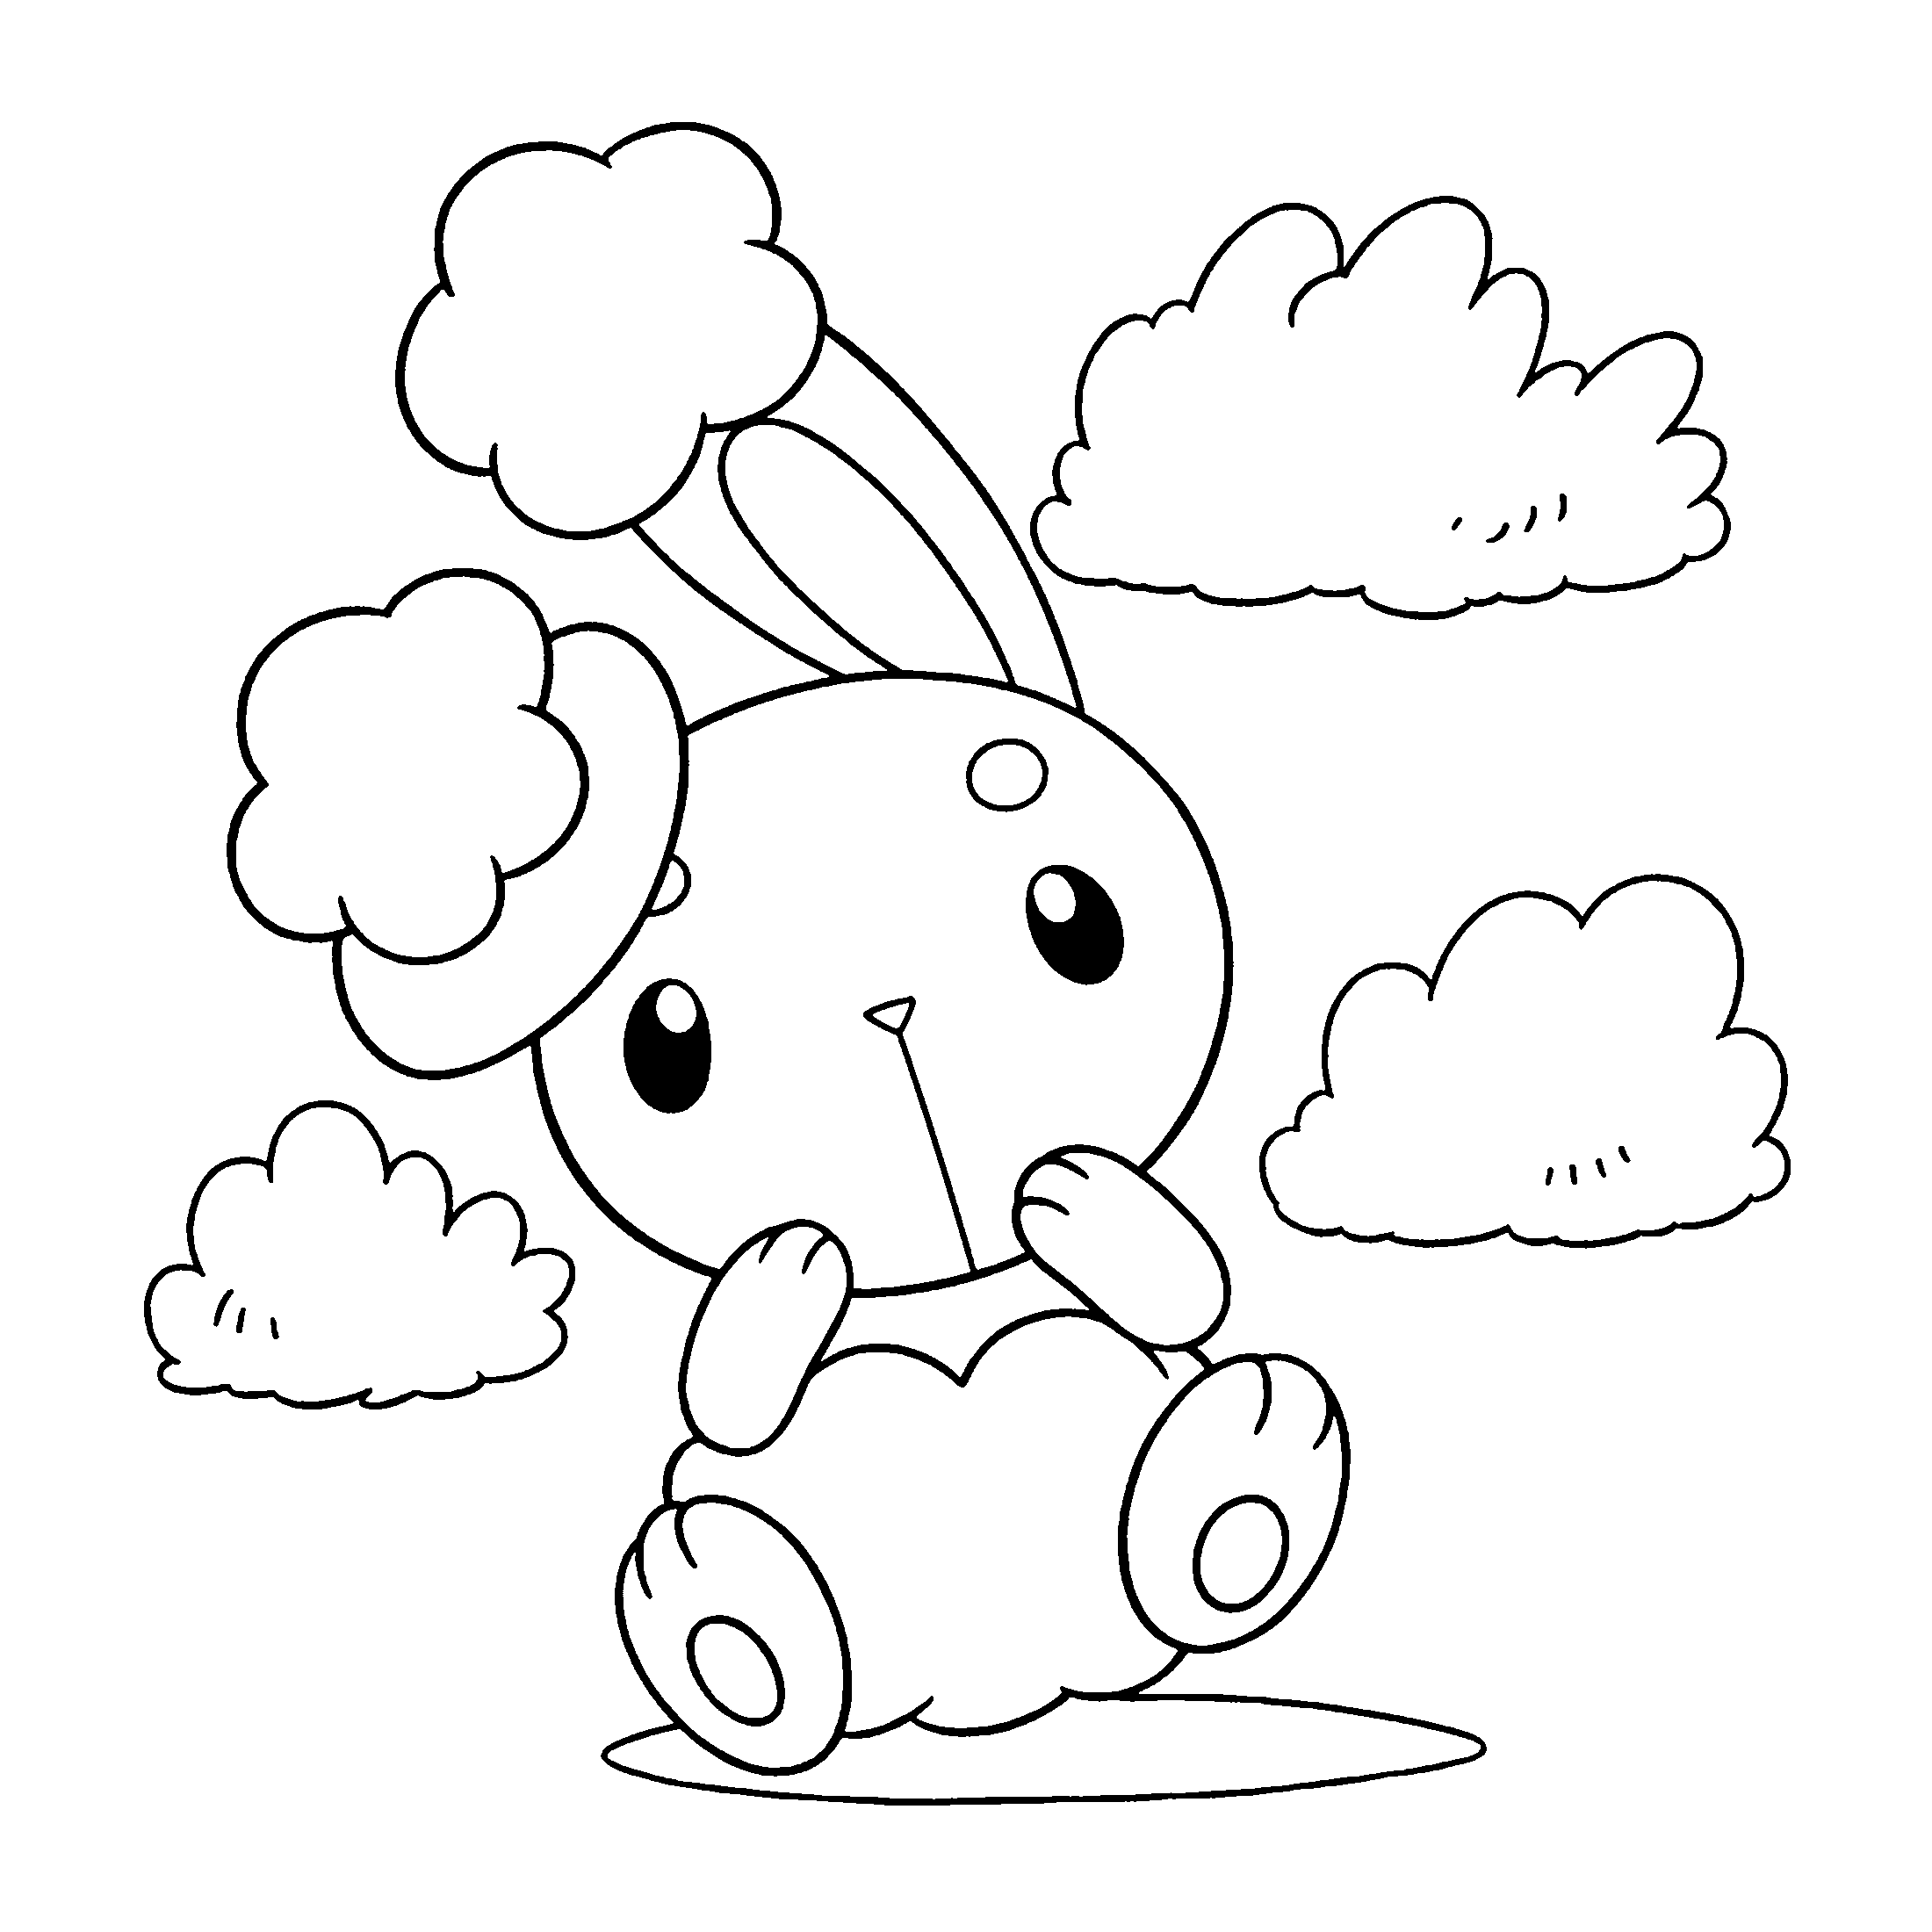 Pokemon Group Coloring Pages - Coloring Home